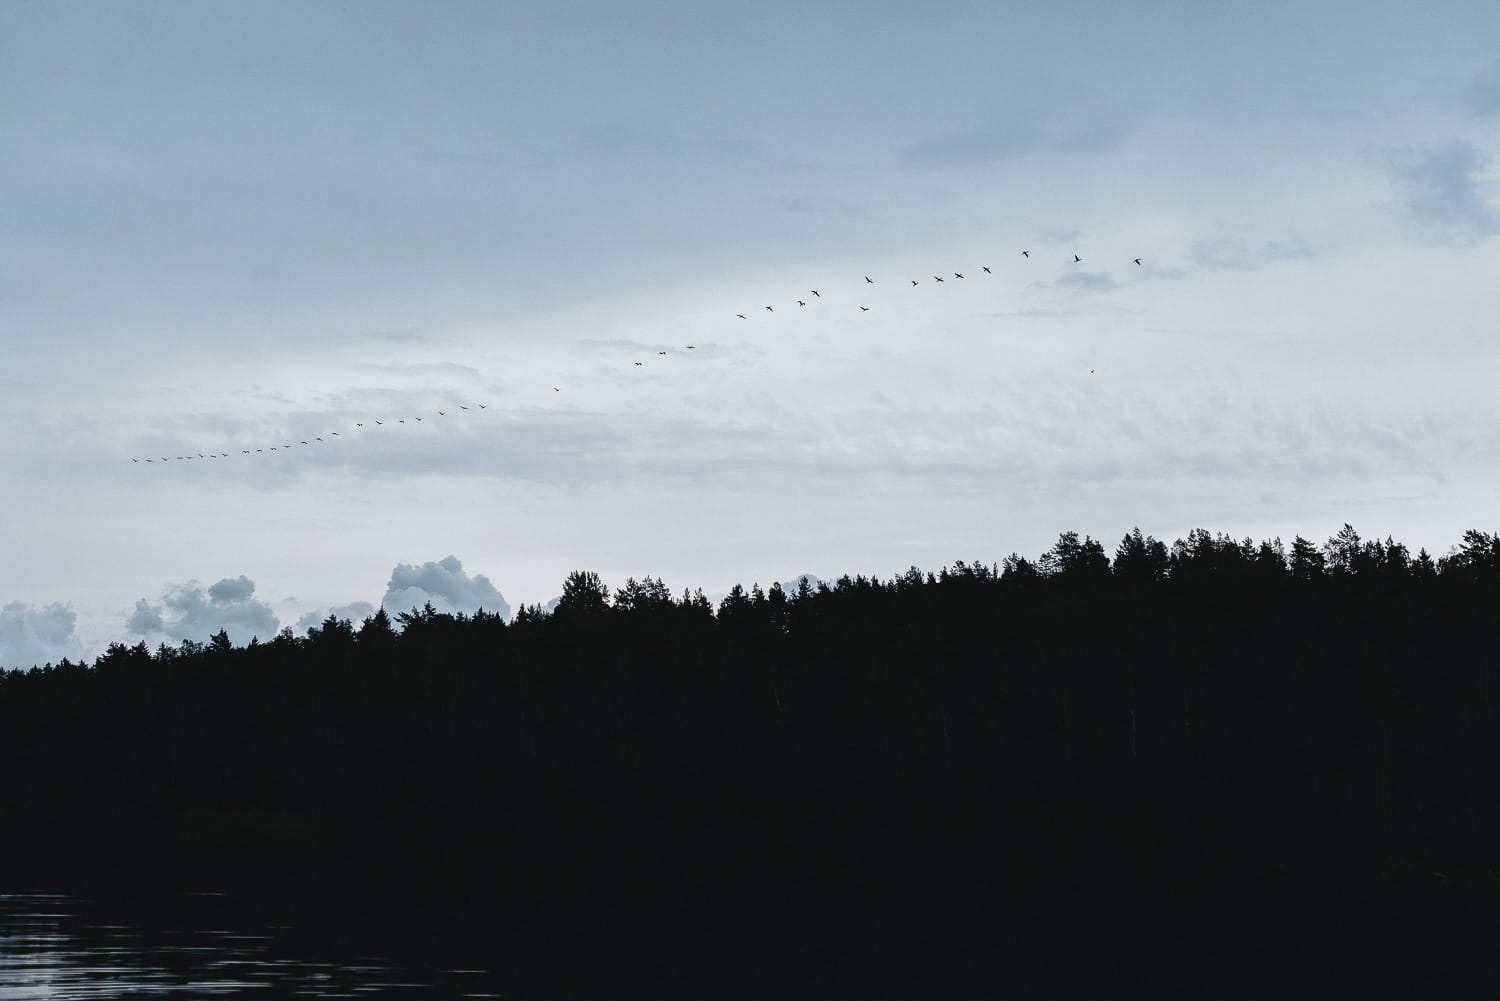 birds flying across the sky